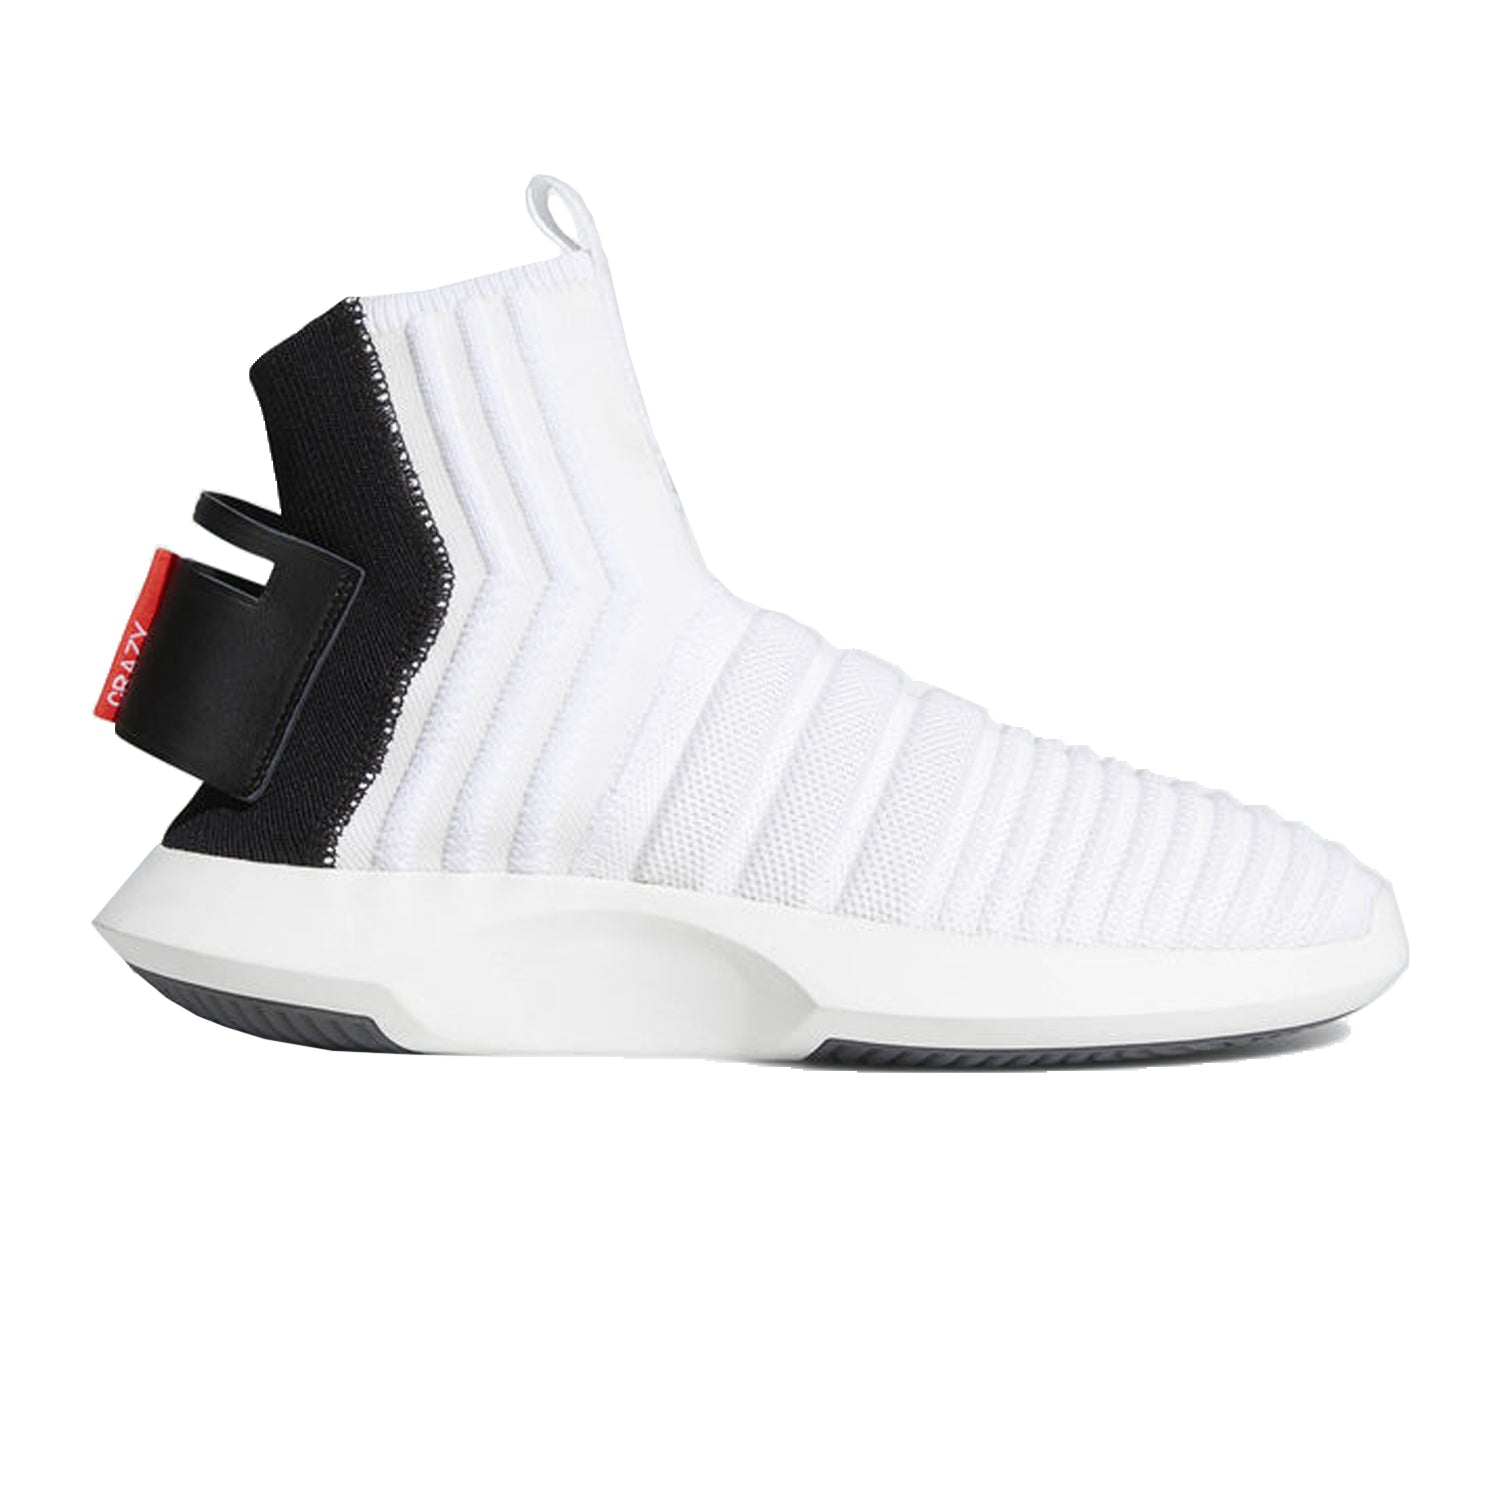 CRAZY 1 ADV SOCK PRIMEKNIT WHITE/BLACK